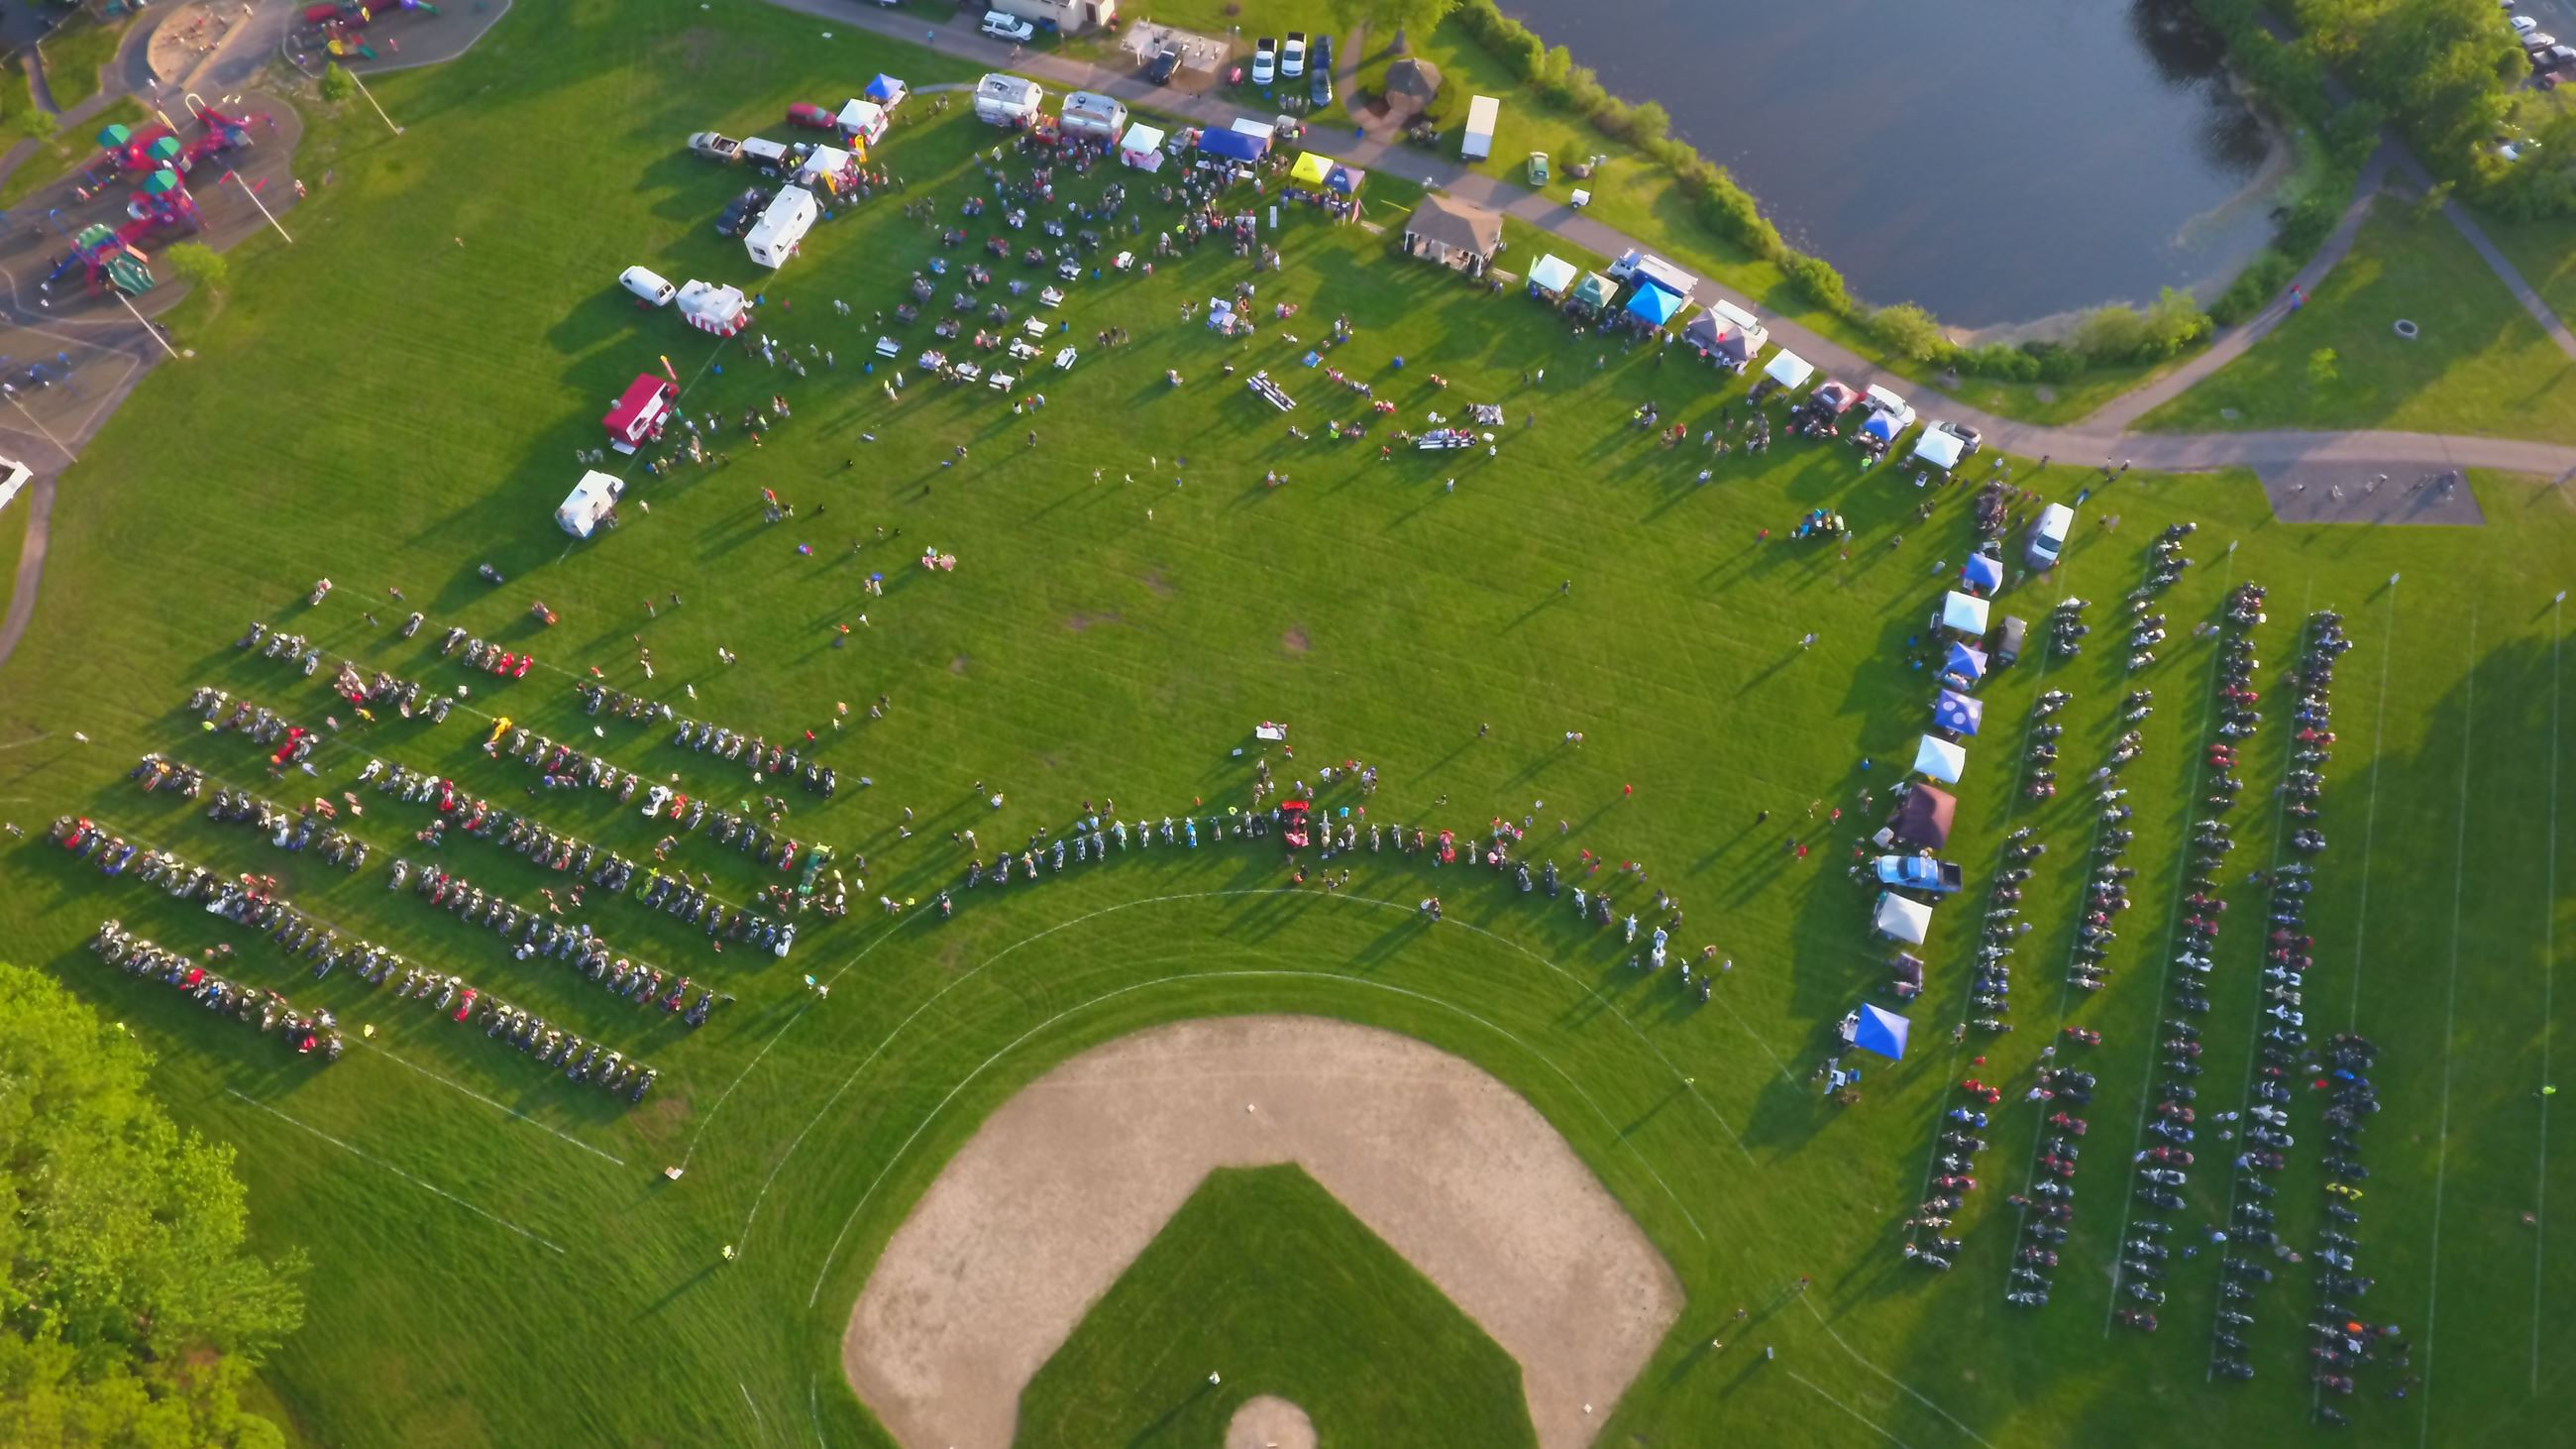 Aerial Photo of Motorcycle Madness, featuring the entire event; hundreds of motorcycles, vendors and